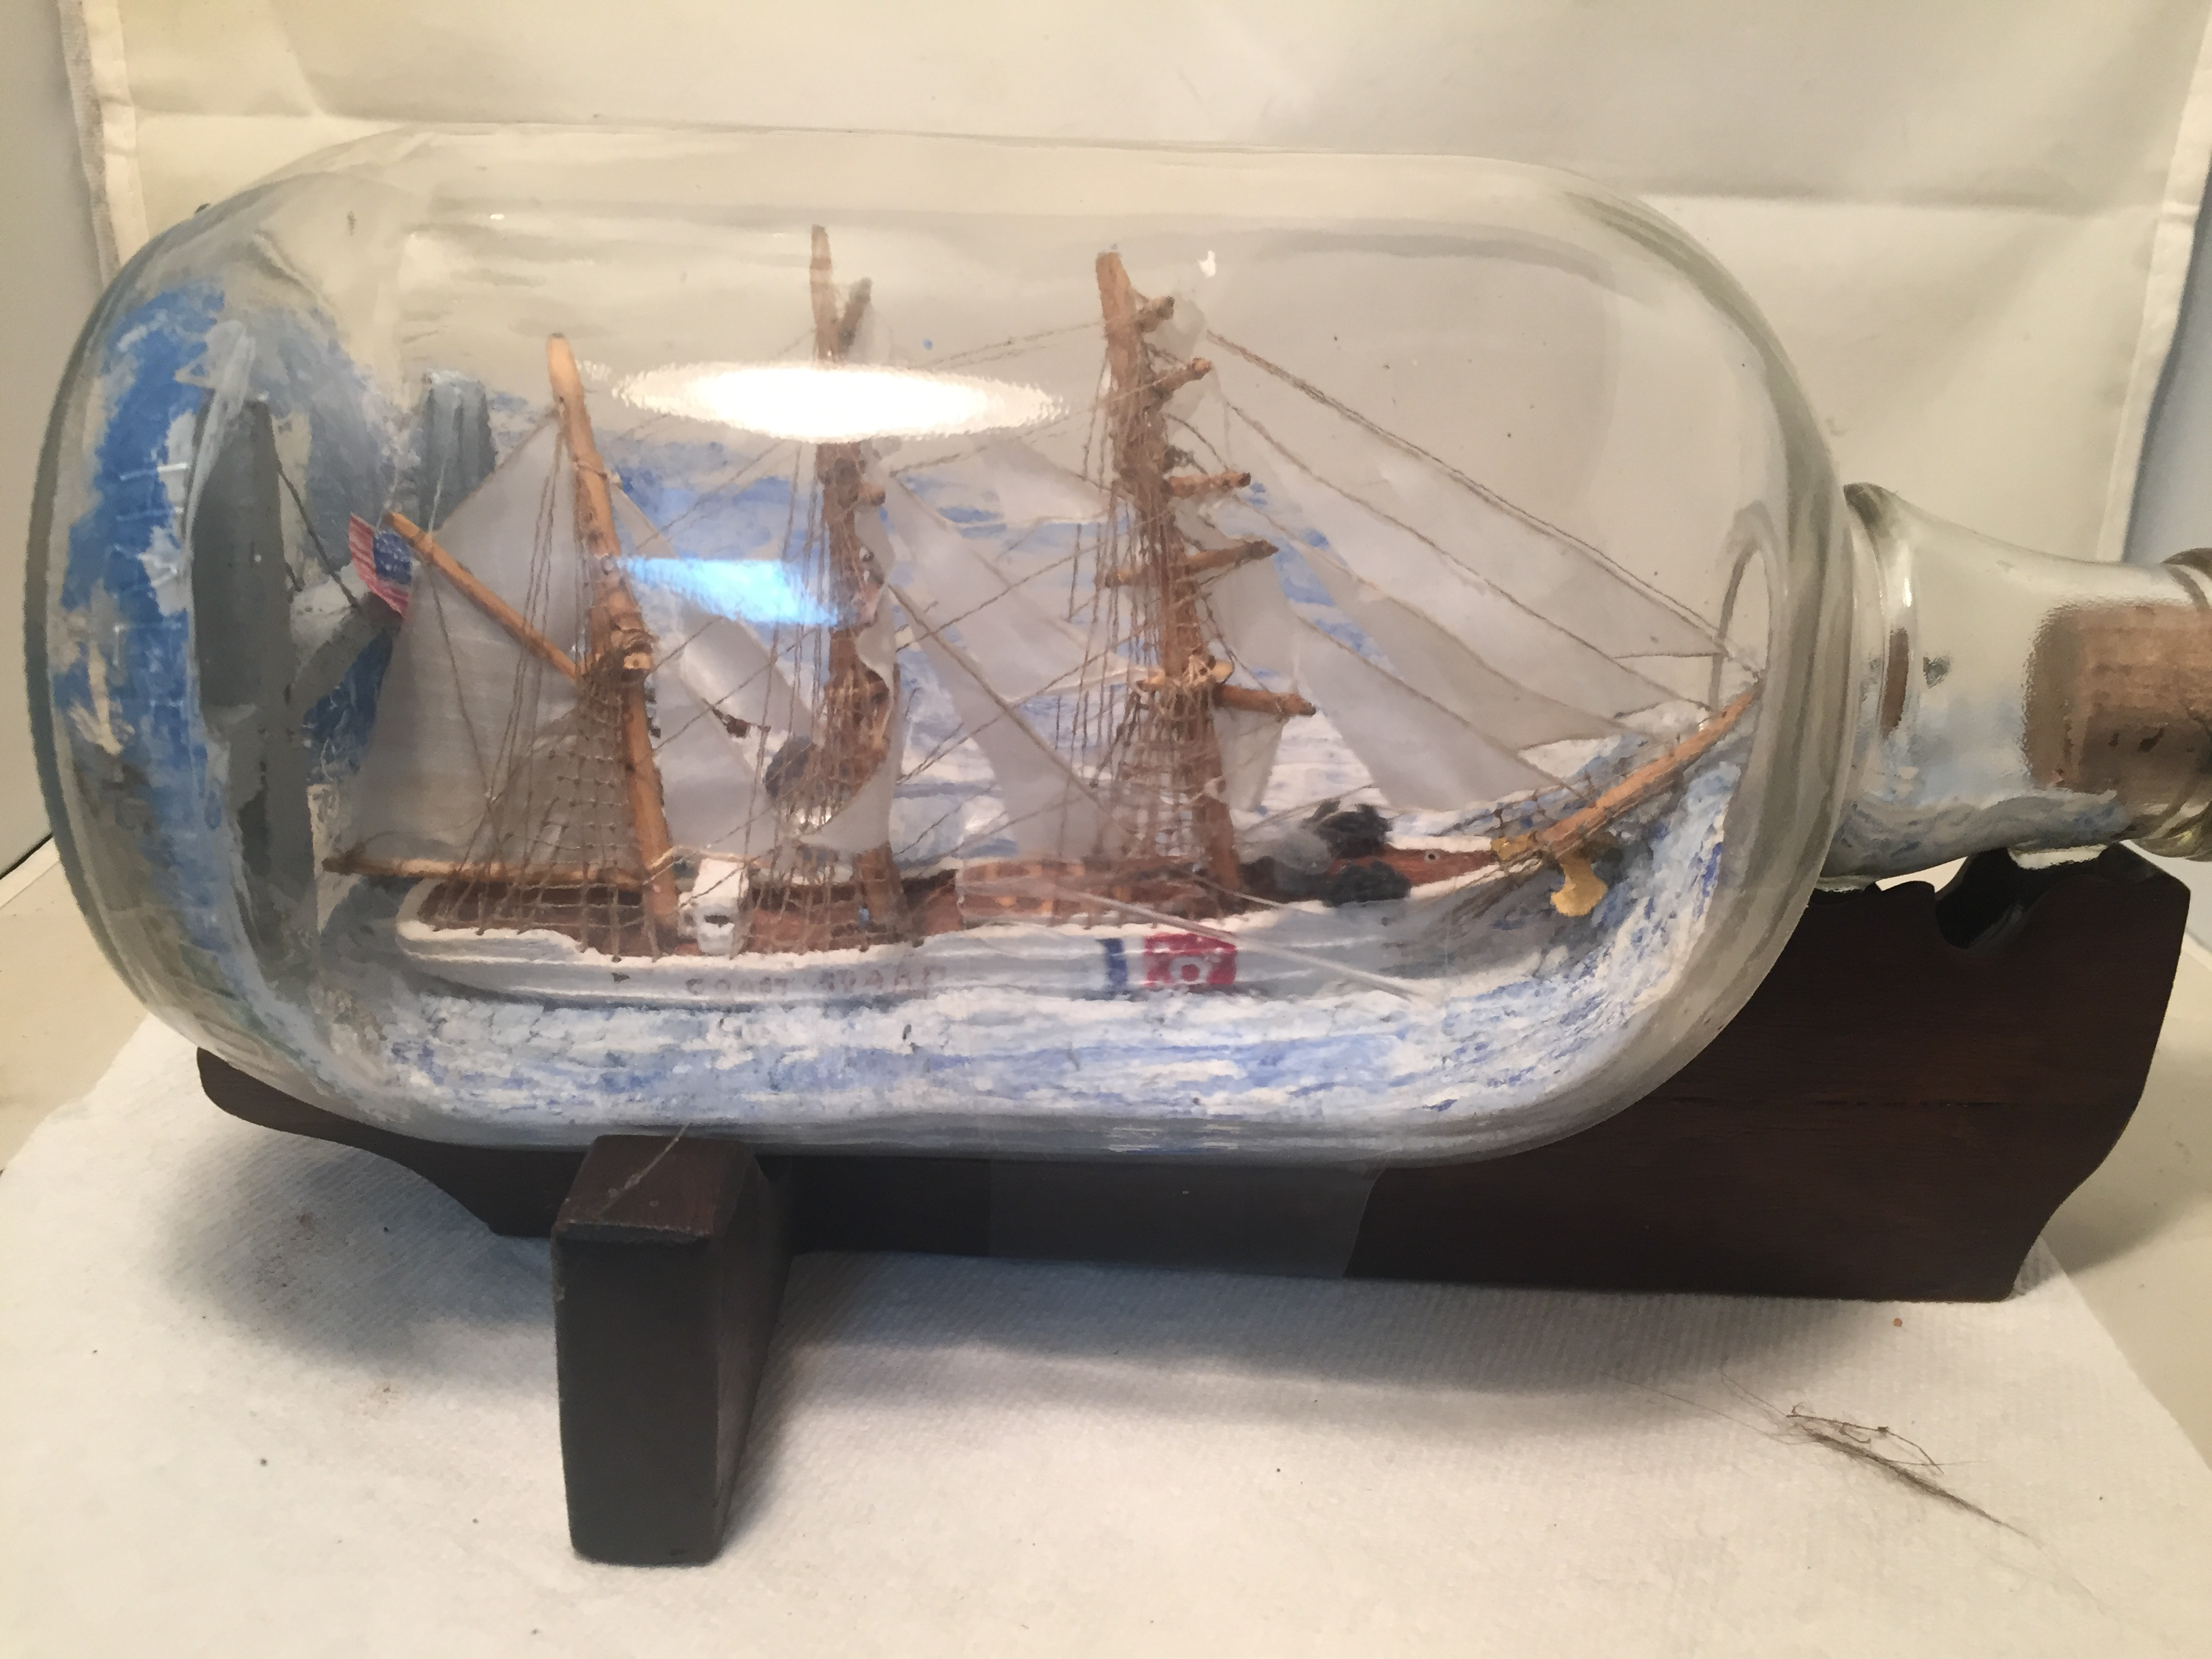 coast guard ship in a bottle